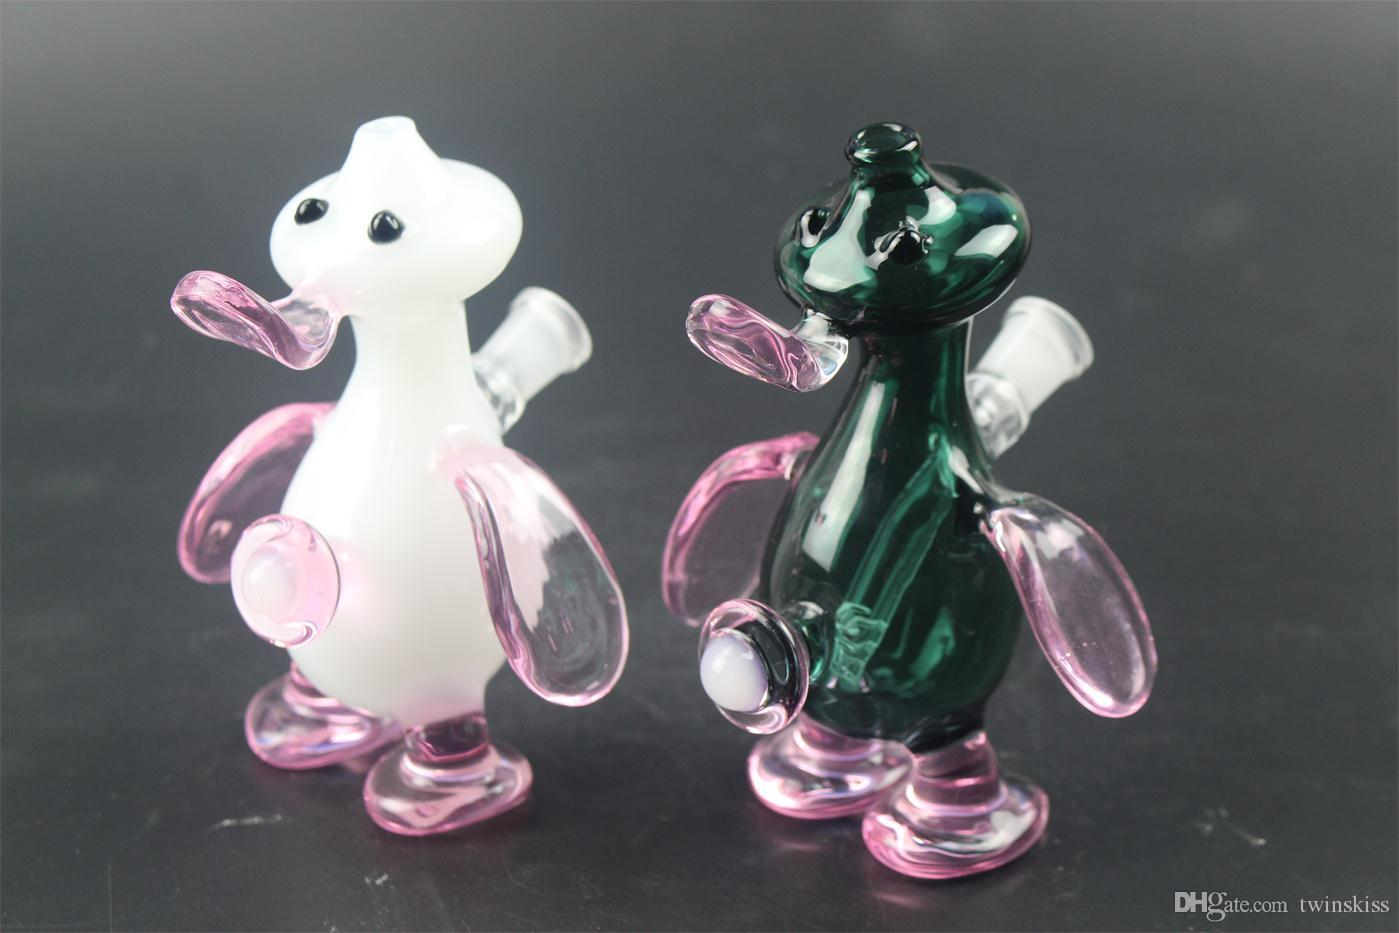 duck water glass pipes pipe sound recycle bin low price and high quality product